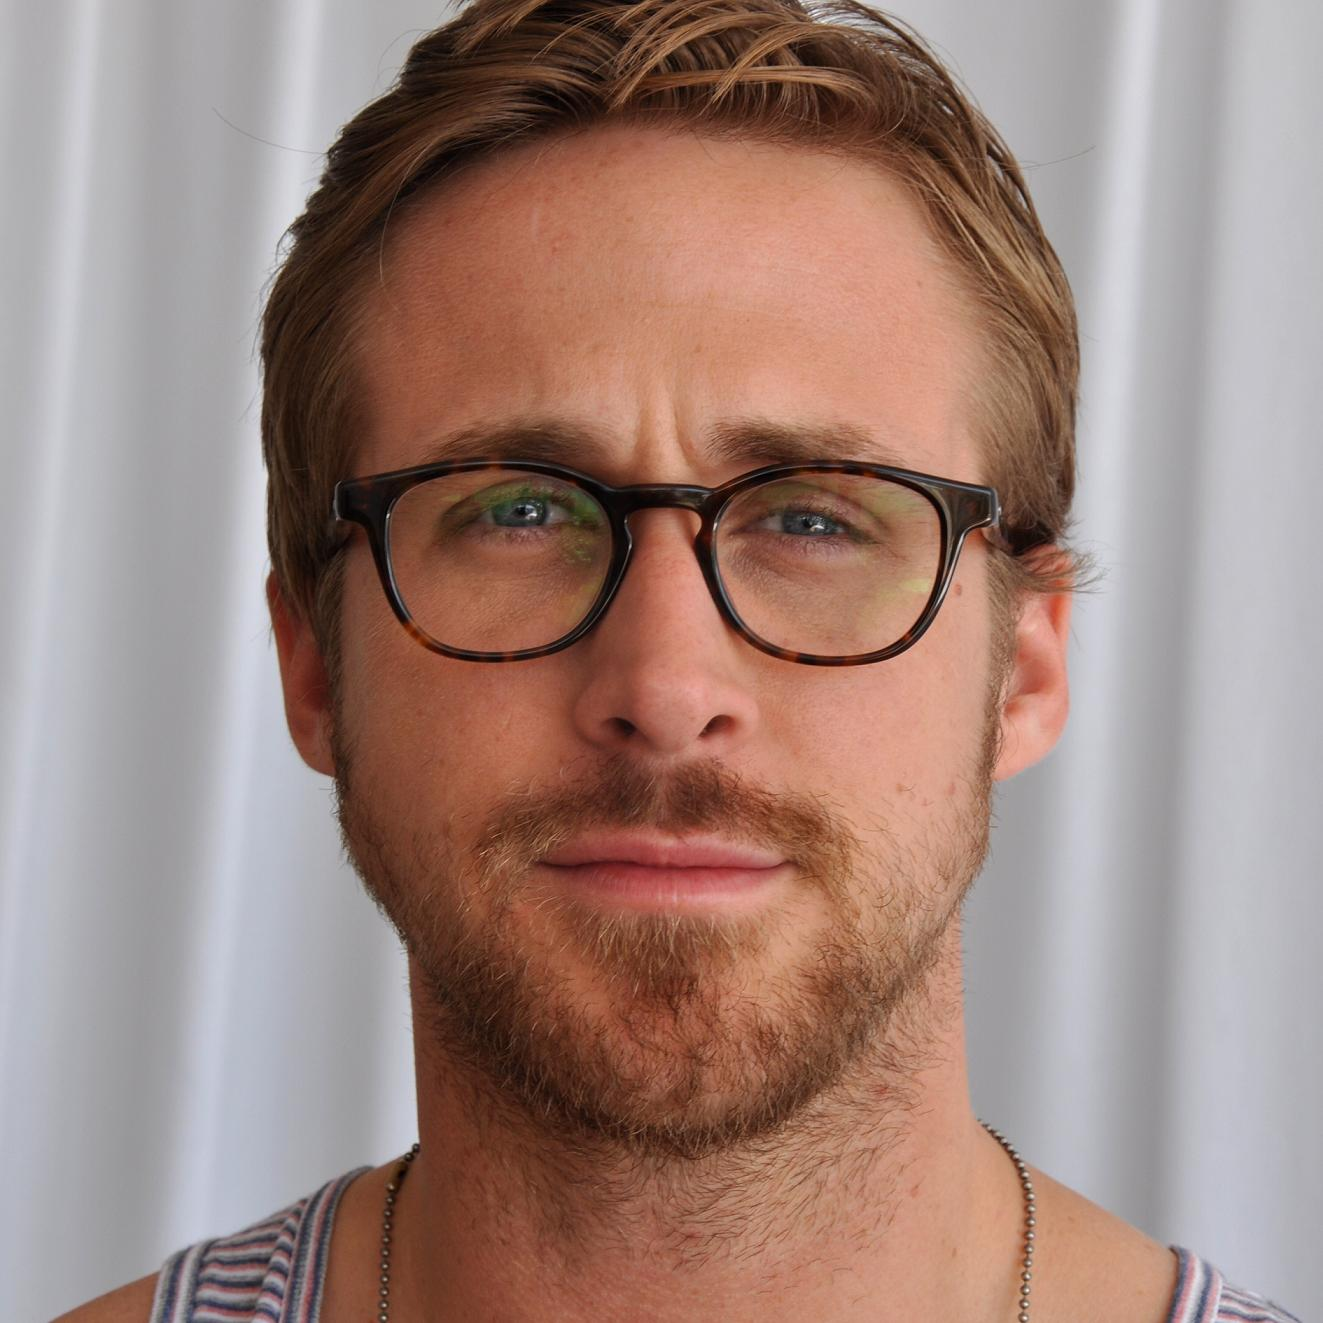 Ryan Gosling Bio, Net Worth, Facts